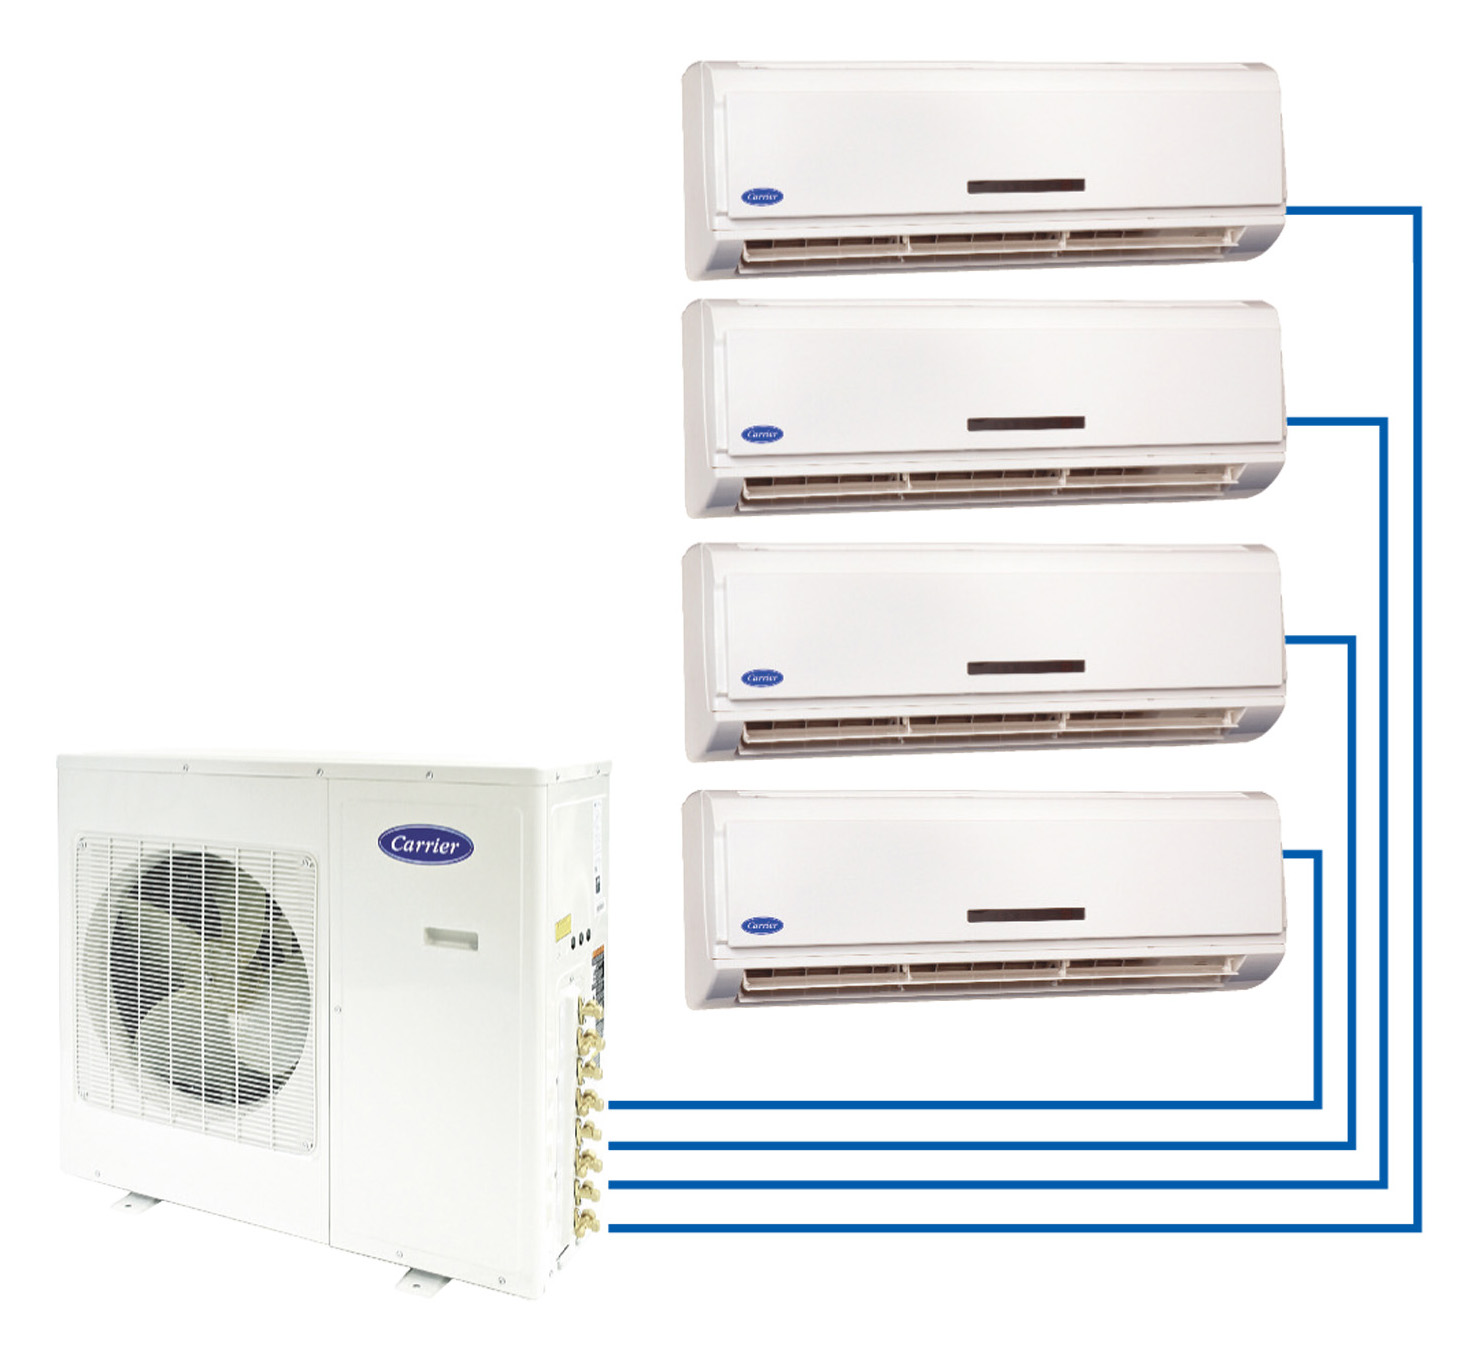 coastalhvac Ductless Systems #024BA2